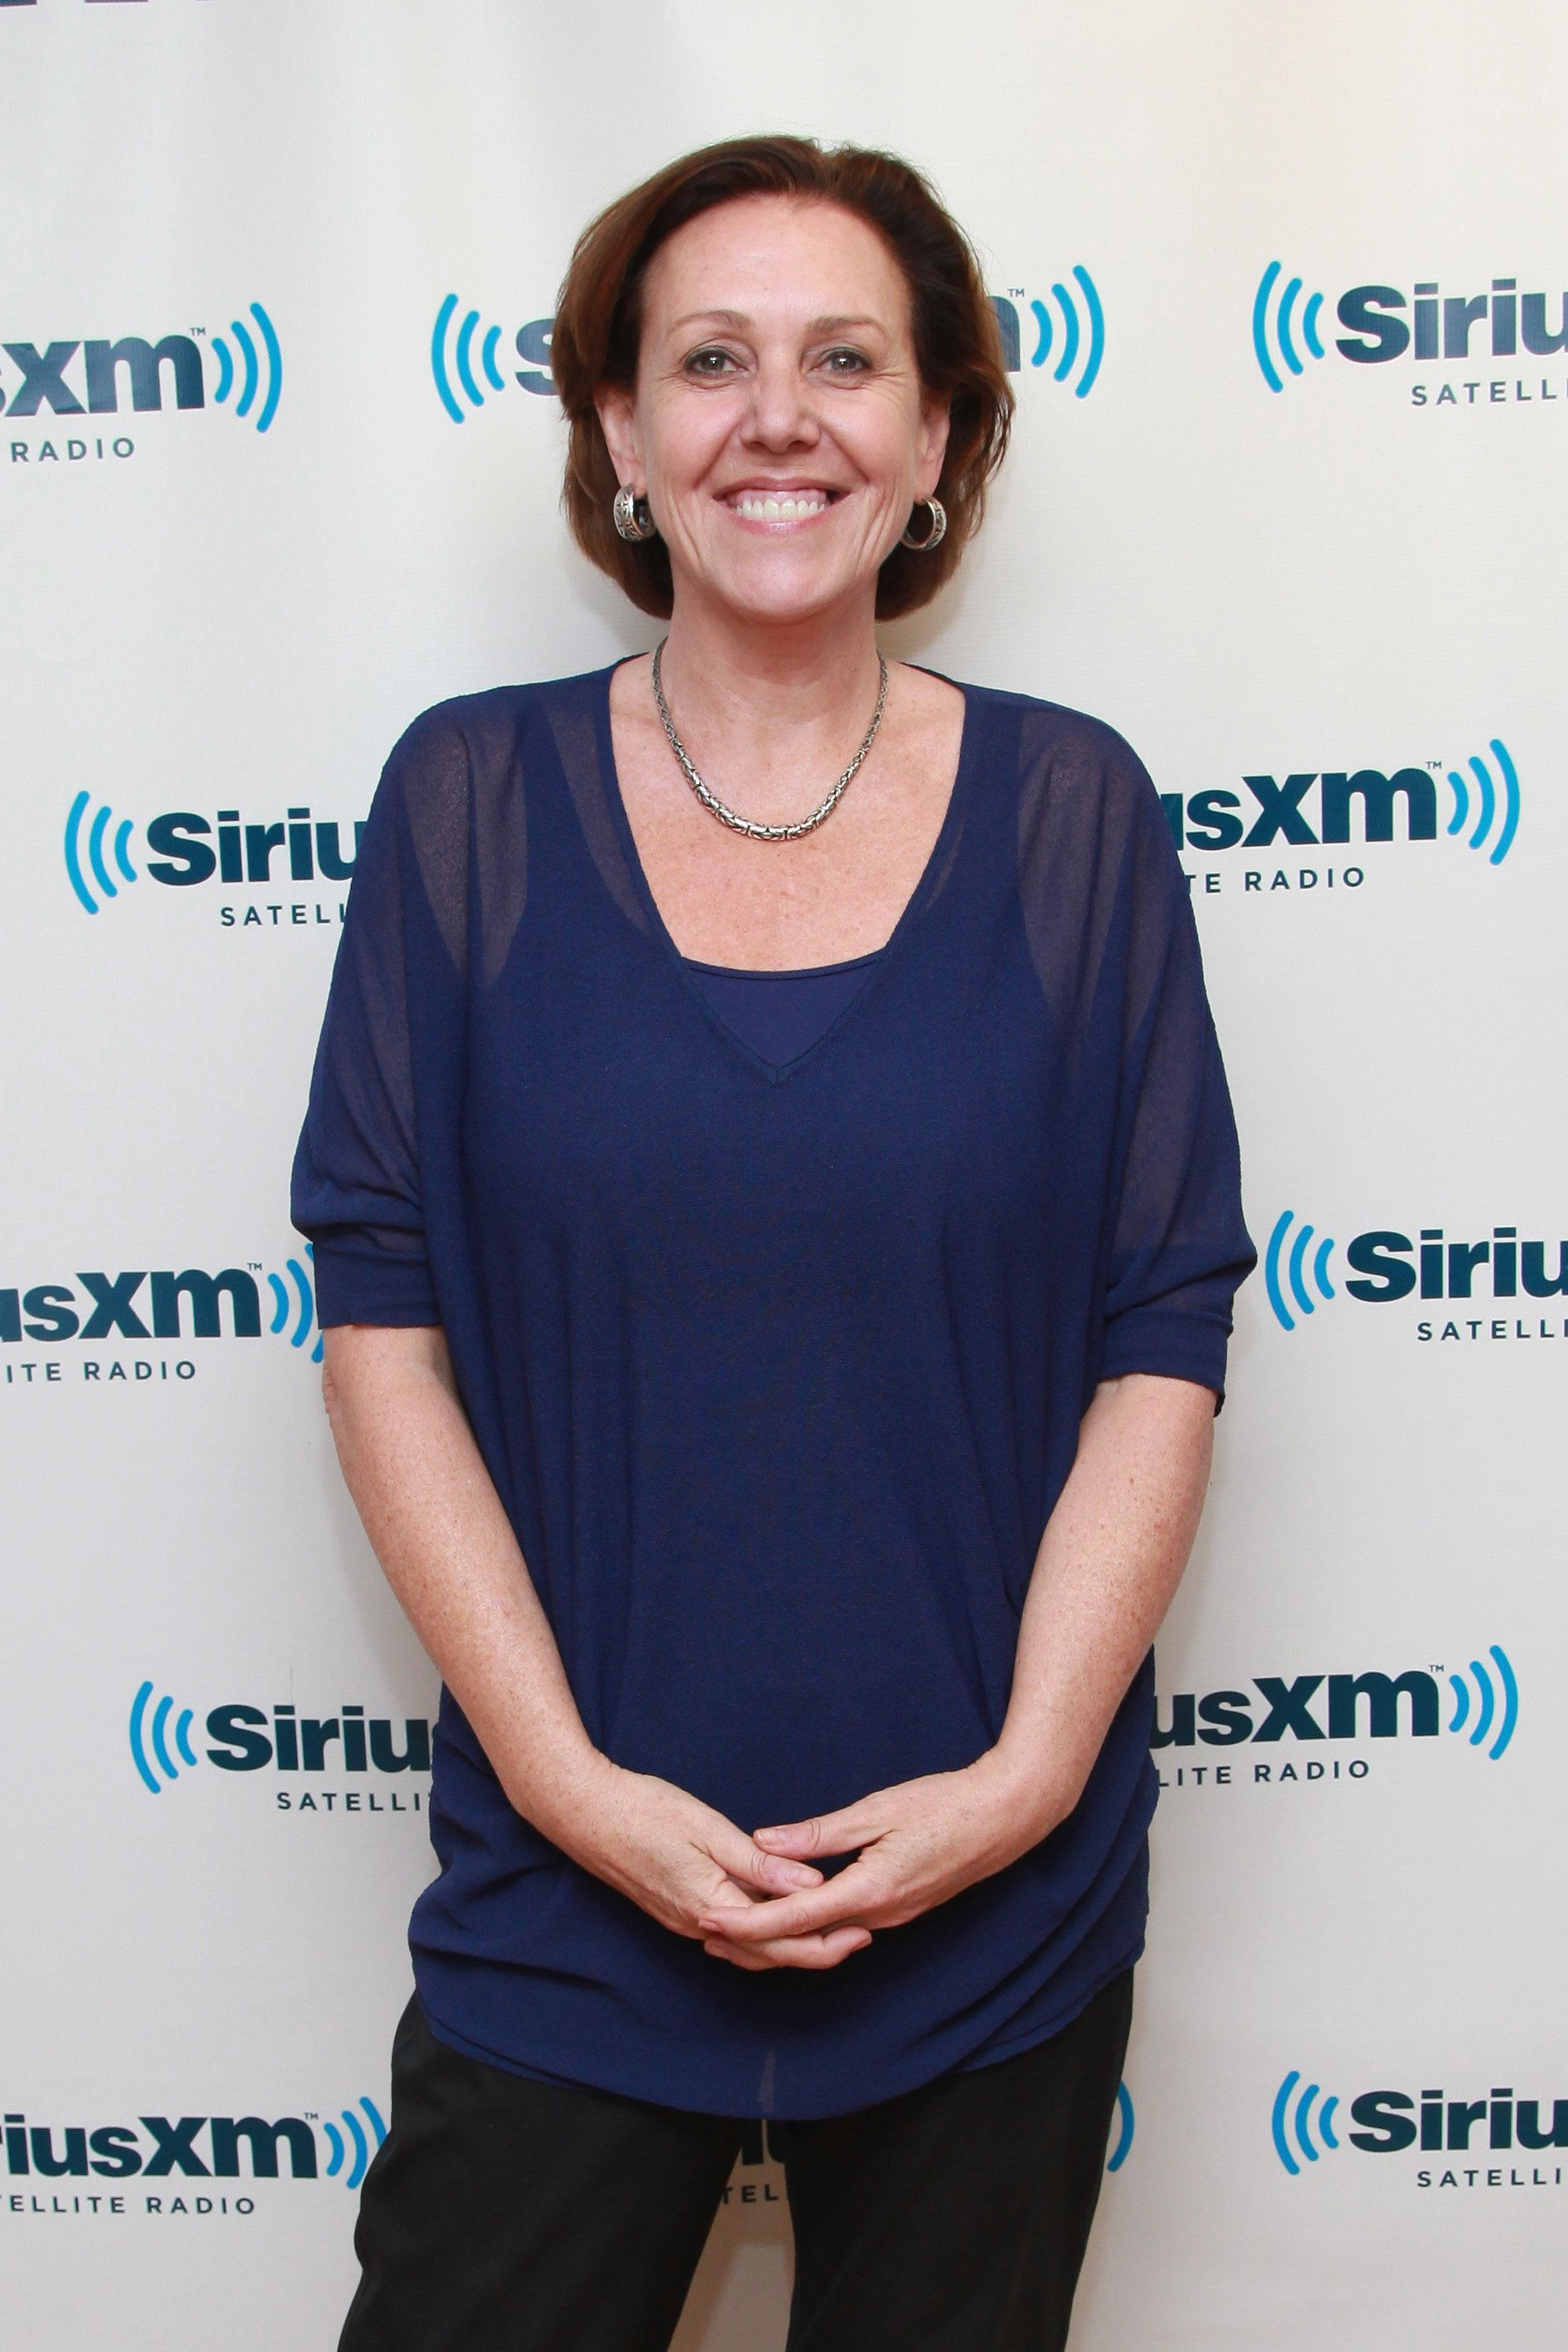 NEW YORK, NY - AUGUST 24:  Salon Editor-at-large Joan Walsh visits SiriusXM Studio on August 24, 2012 in New York City.  (Photo by Taylor Hill/Getty Images)